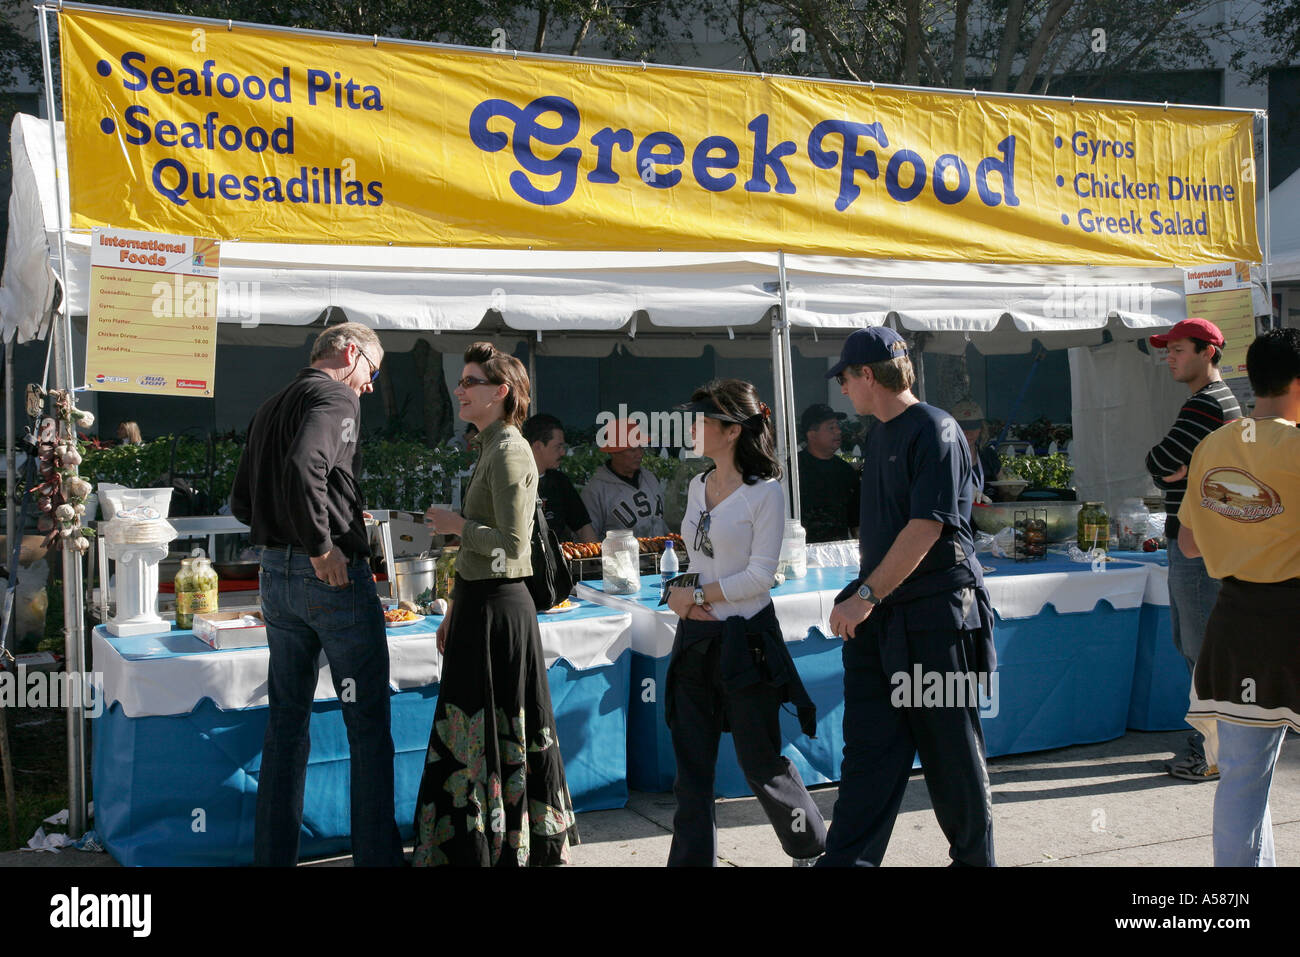 Exhibition Stall Vendors : Seafood stall exhibition food from stock photos seafood stall